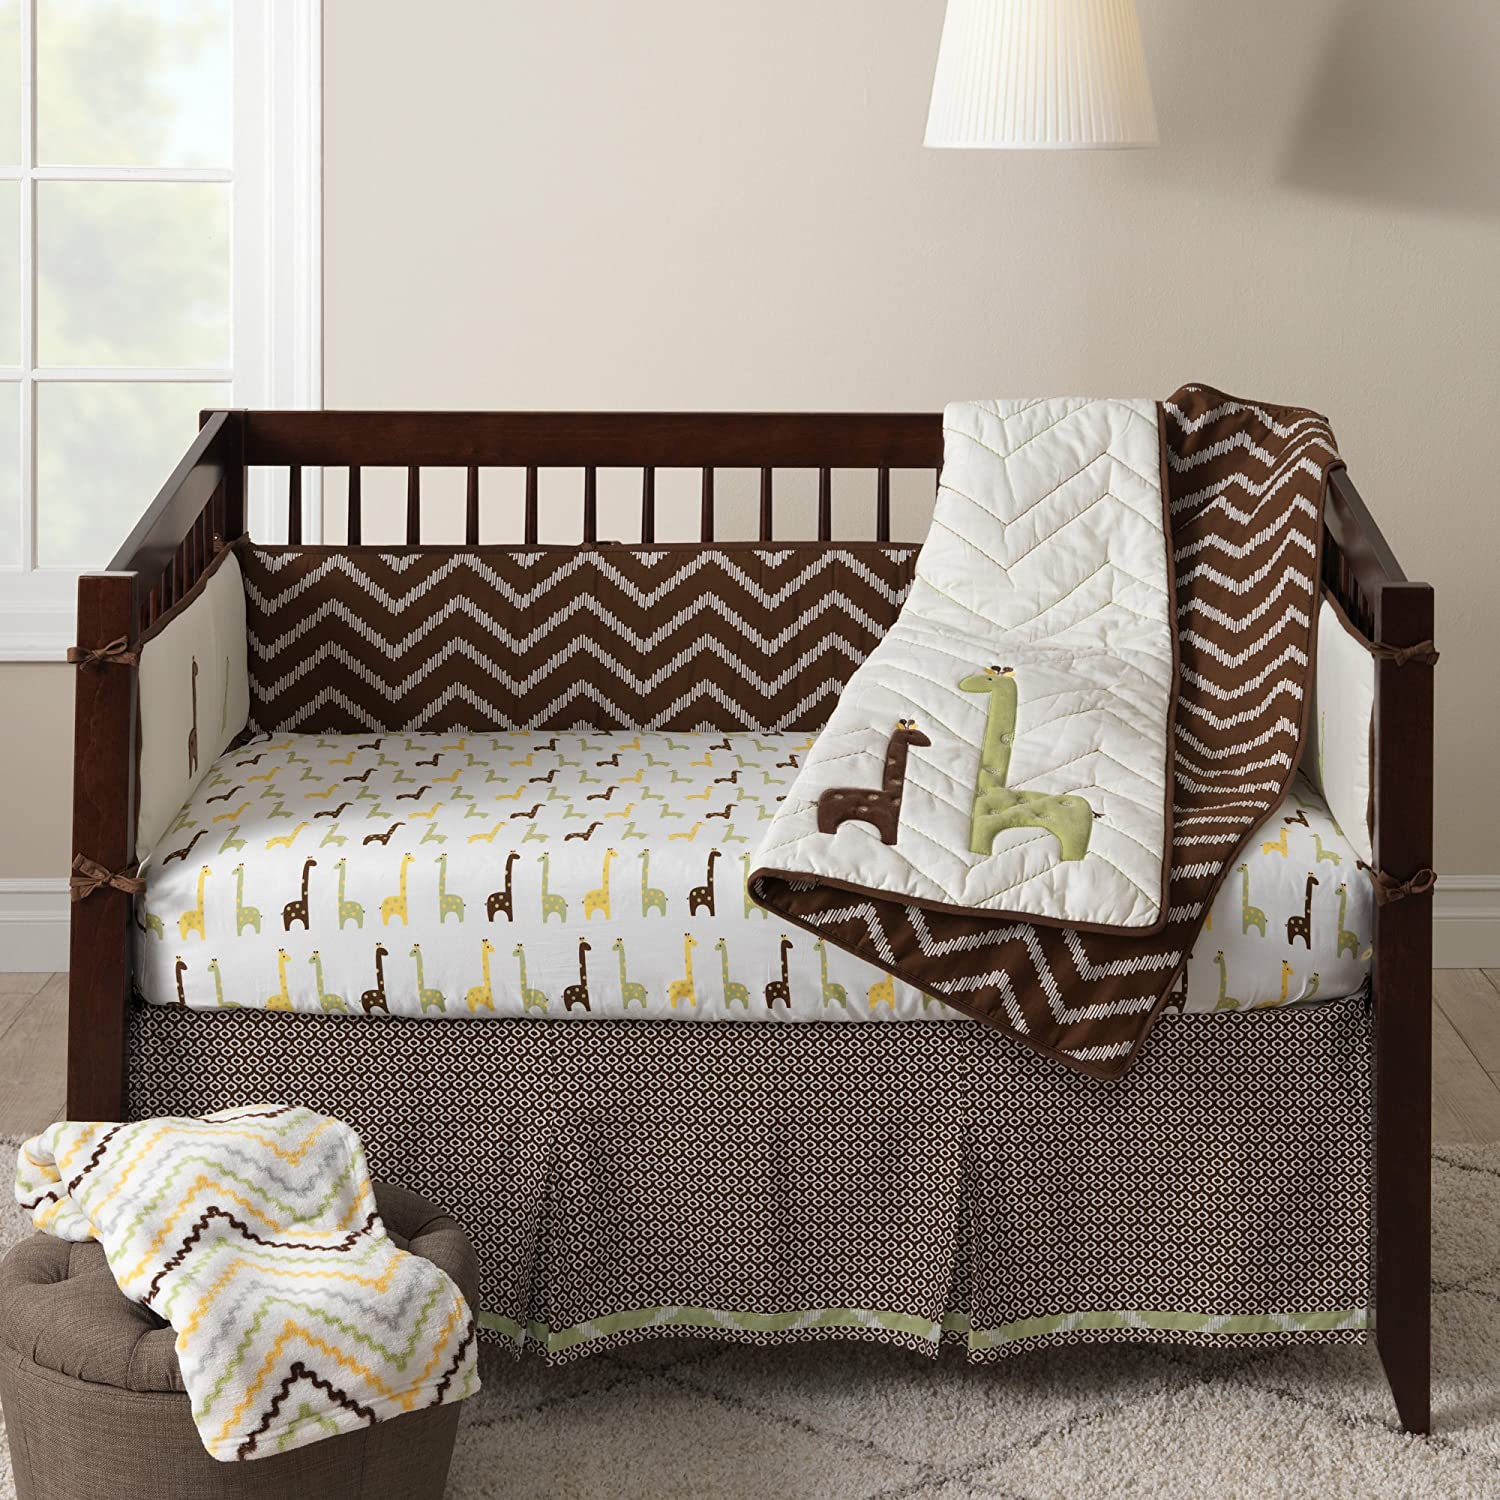 Lambs and Ivy Brown Giraffe Baby Bedding